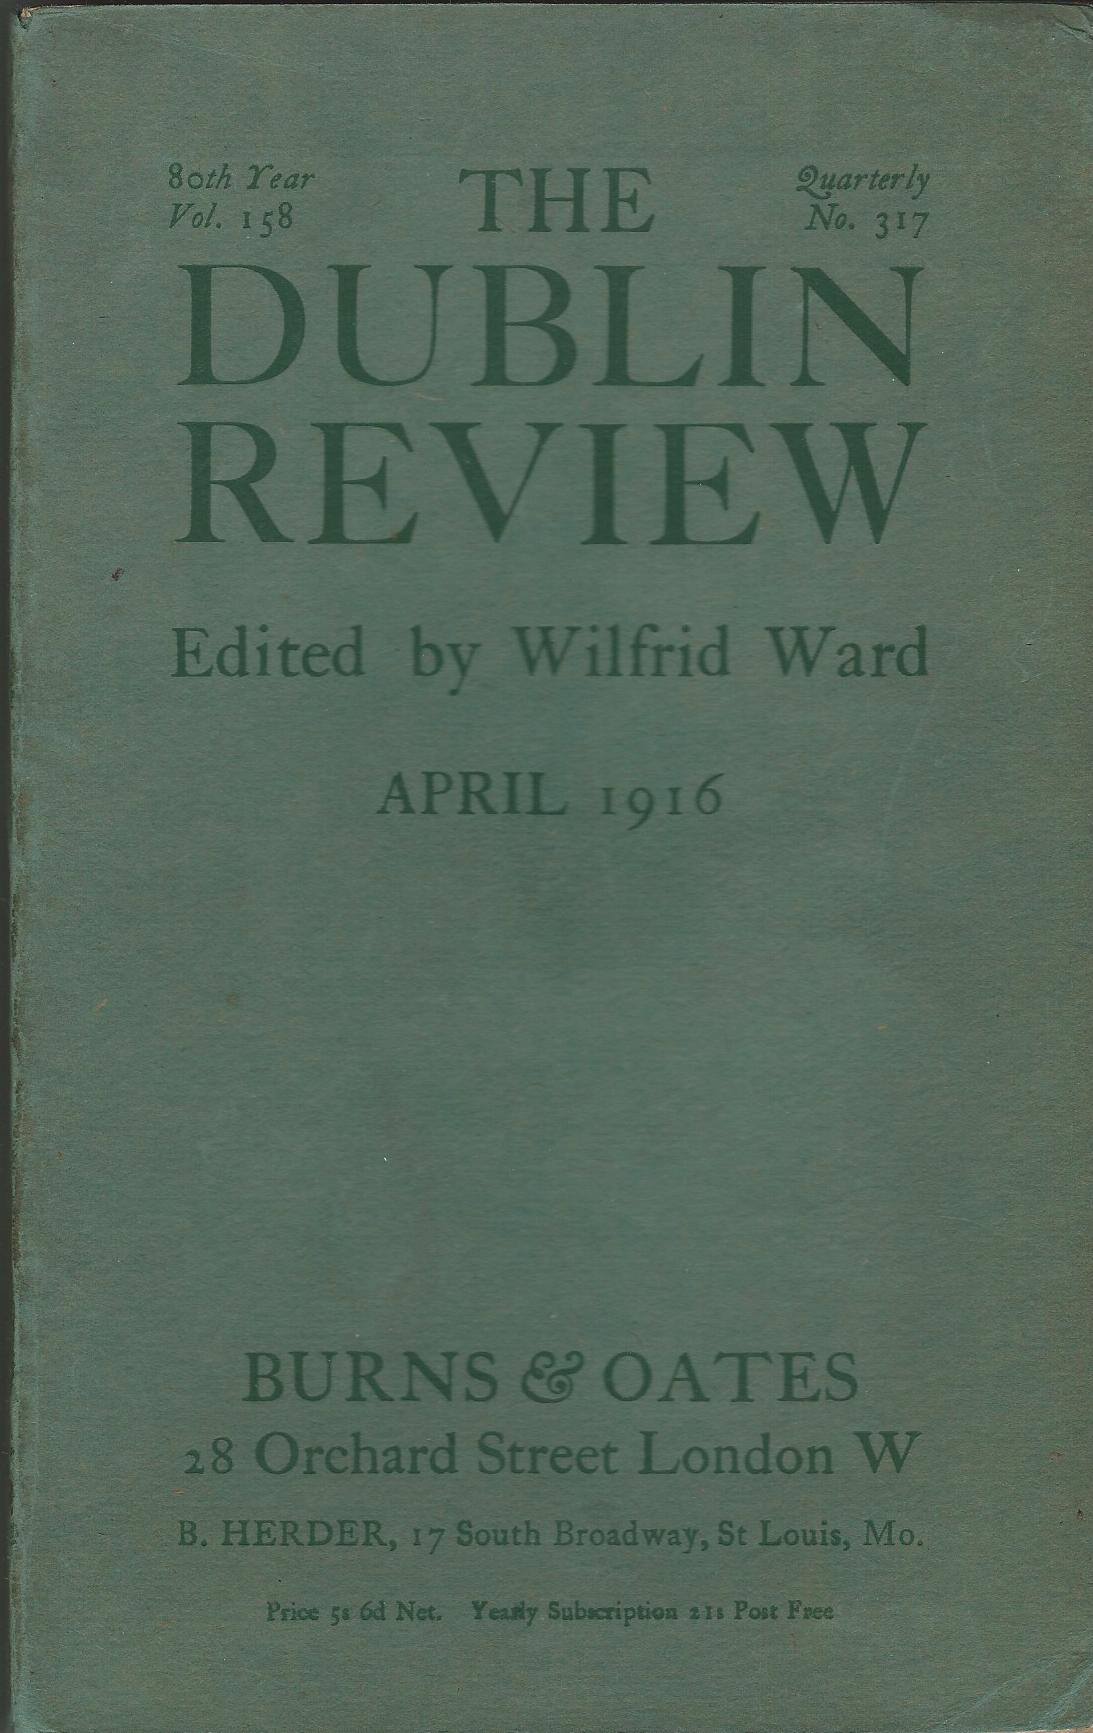 Image for The Dublin Review: April 1916 Vol. 158, No.317